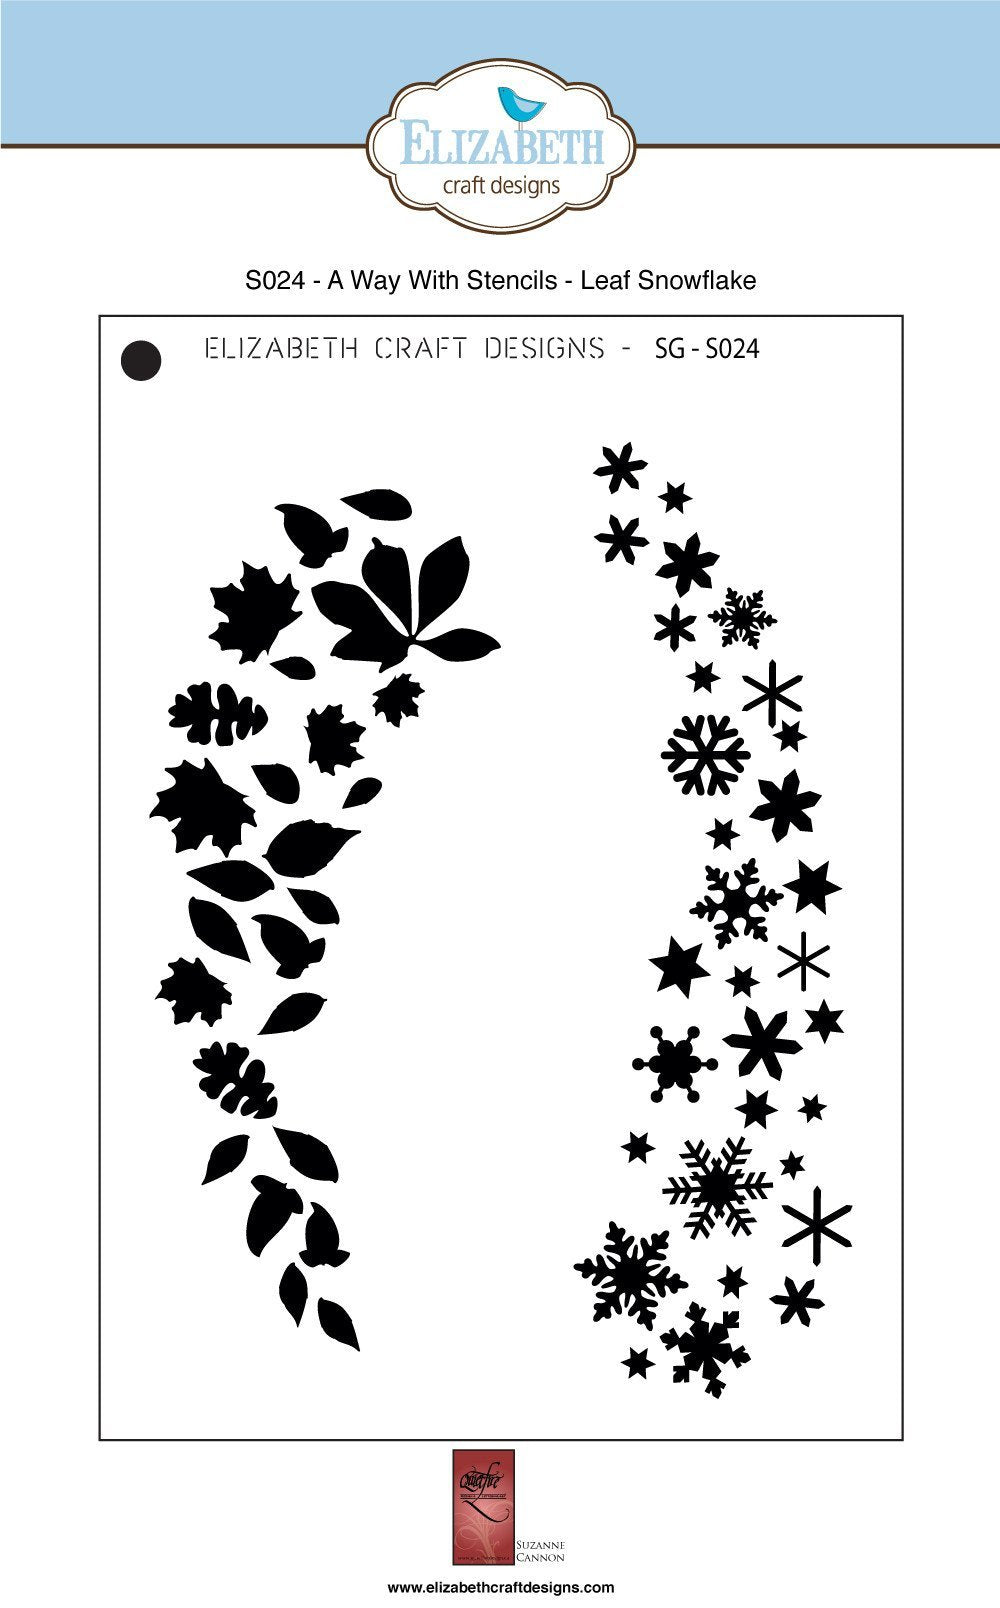 A Way With Stencils - Leaf Snowflake - Stencil - ElizabethCraftDesigns.com